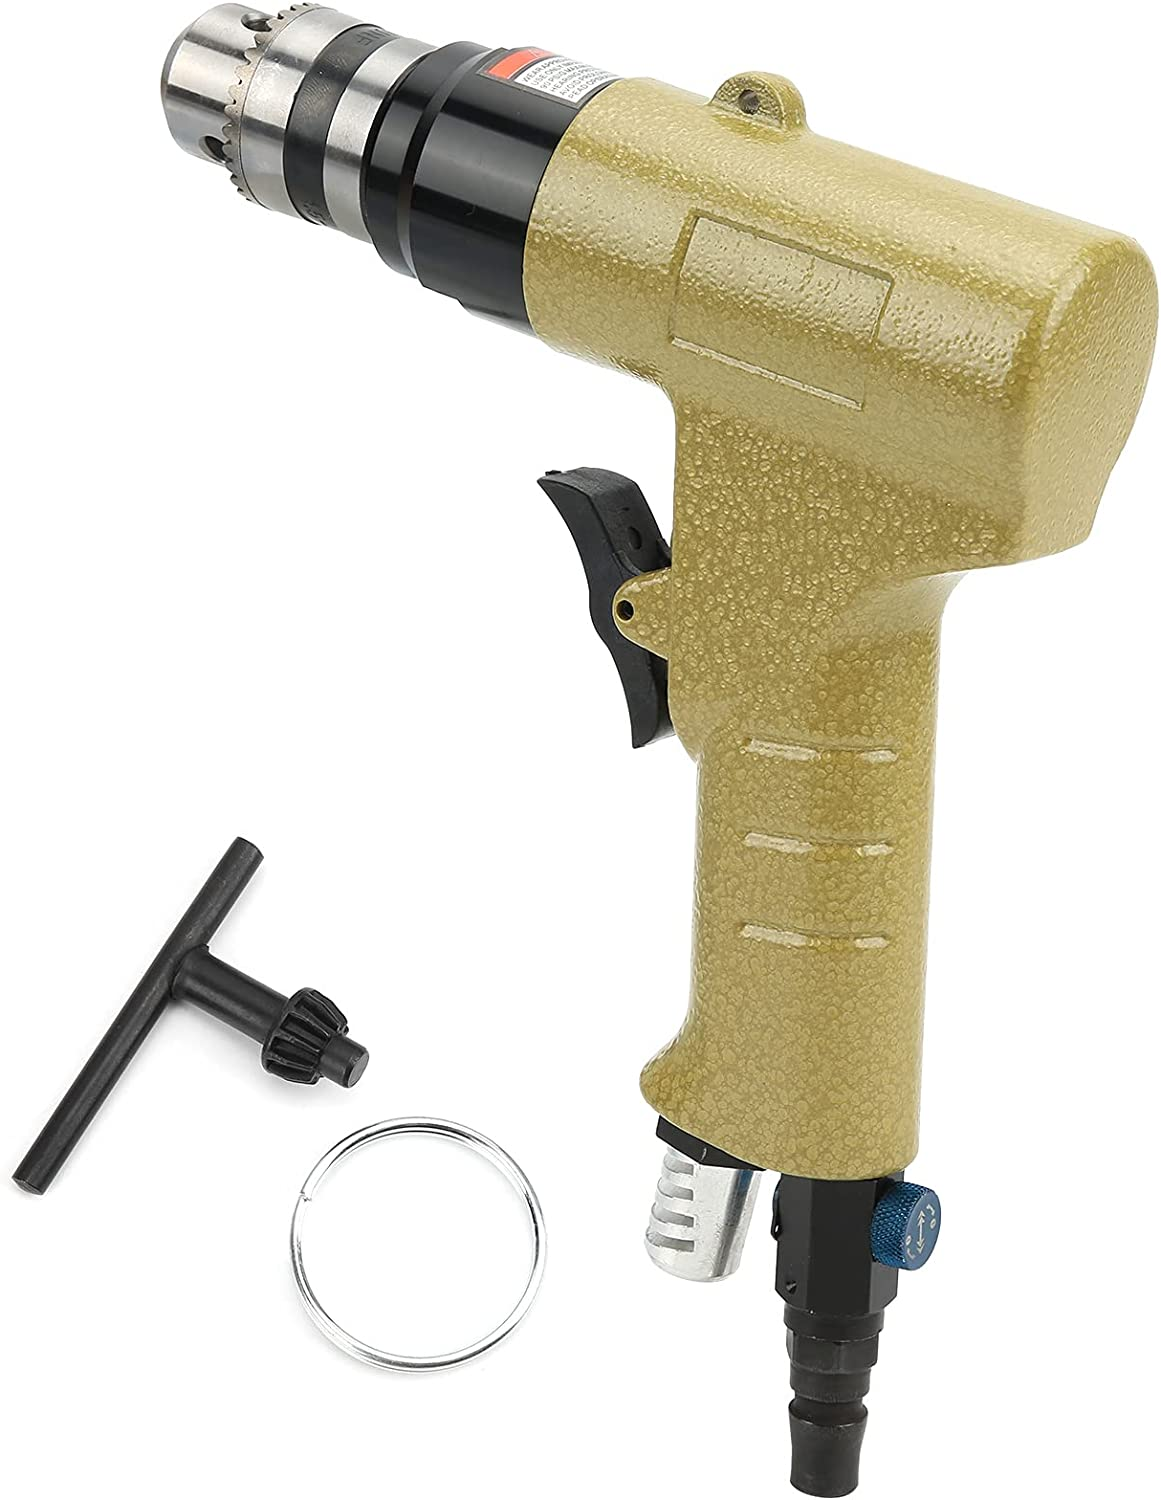 Type Air Drill Max 89% OFF Stable Drilling Industrial All items in the store Wear‑resistant and